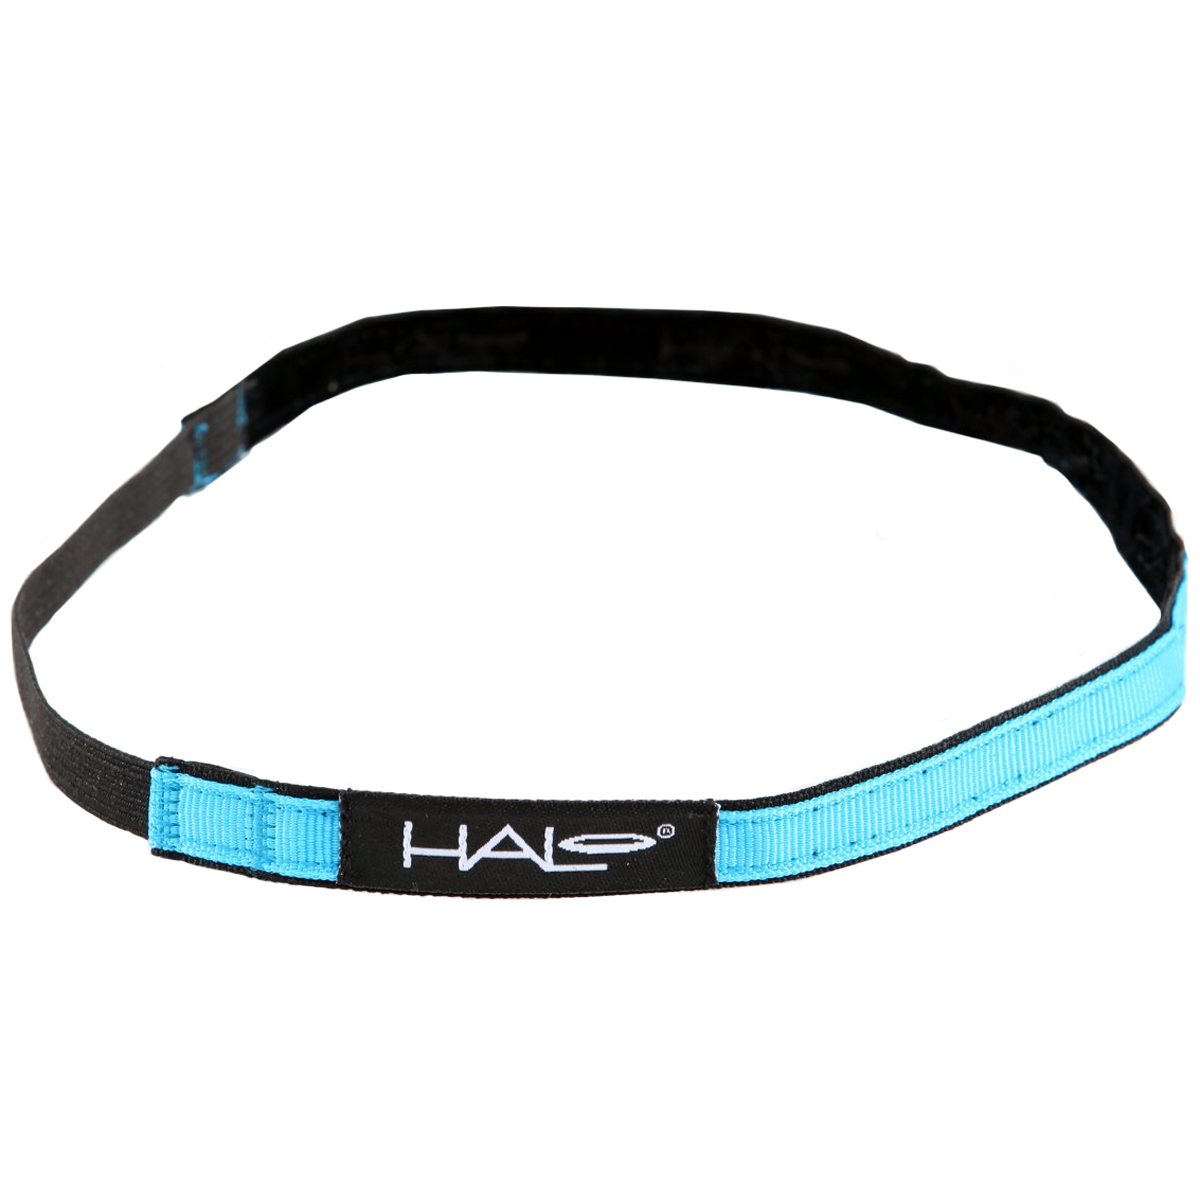 "Halo 1/2"" Wide Hairband"